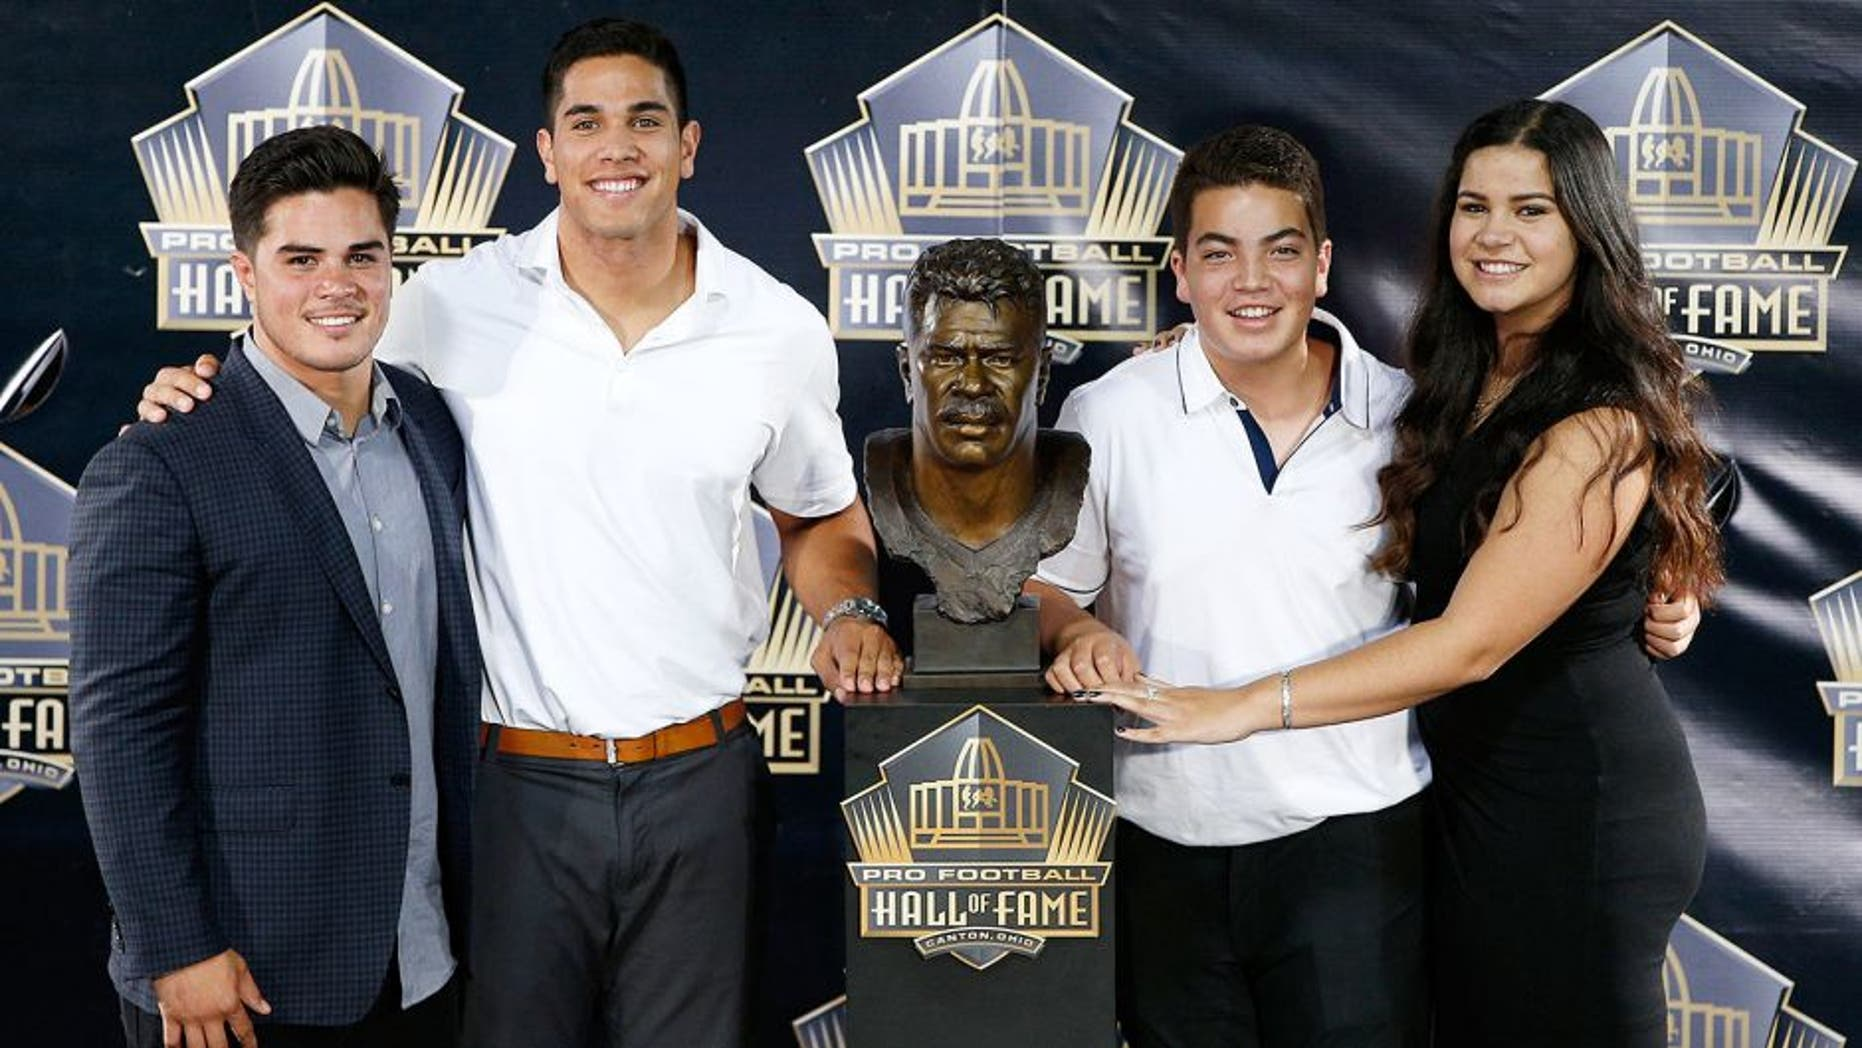 CANTON, OH - AUGUST 8: Junior Seau's children pose with his bust during the NFL Hall of Fame induction ceremony at Tom Benson Hall of Fame Stadium on August 8, 2015 in Canton, Ohio. (Photo by Joe Robbins/Getty Images)